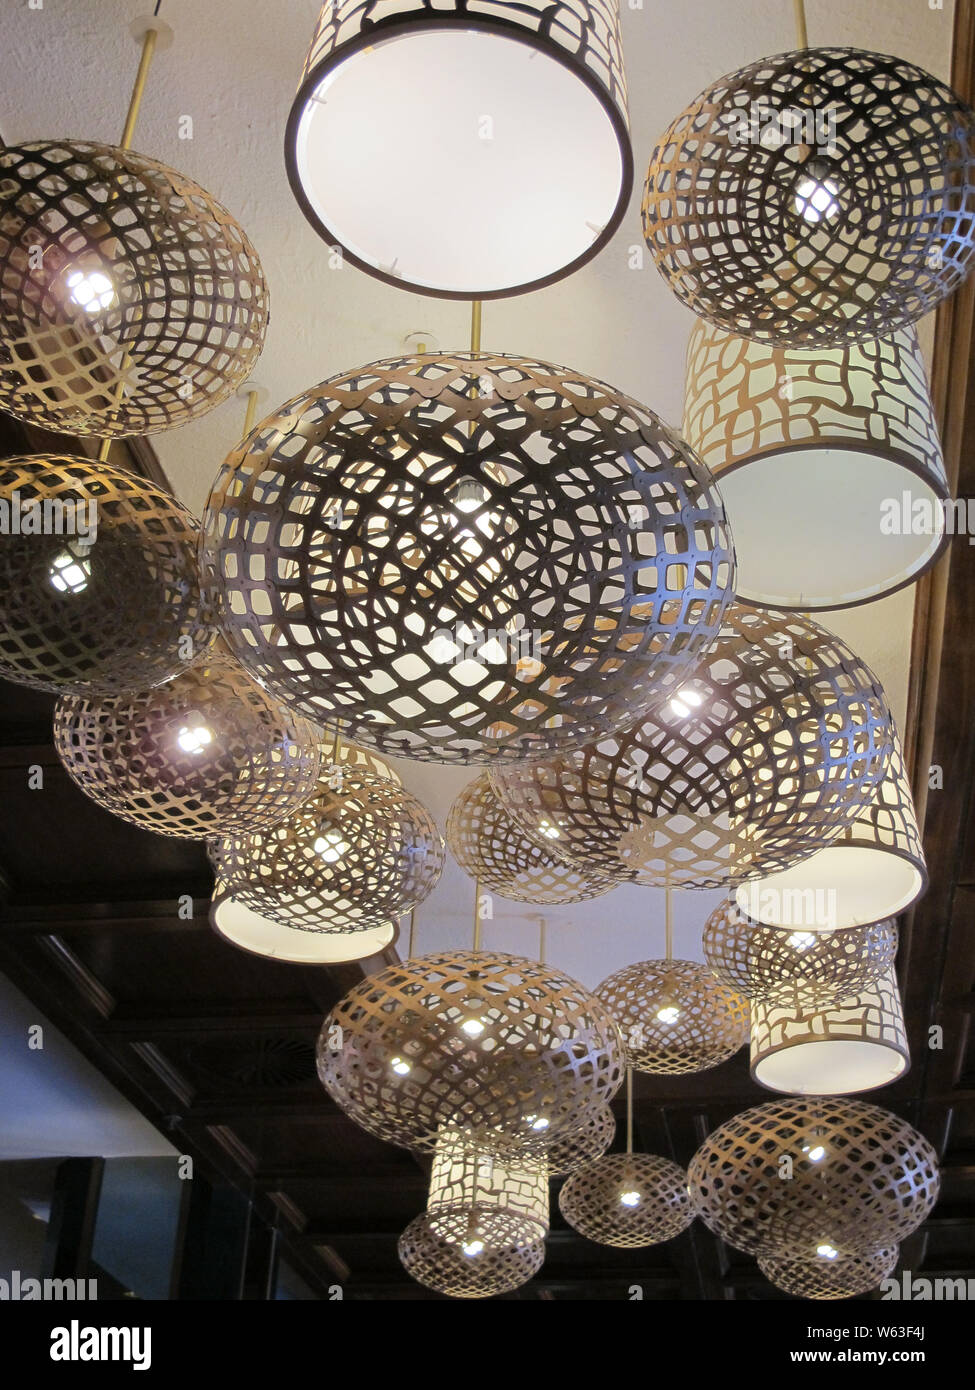 Shiny Silver Metallic Circular Lamp Shades Hanging From A White Ceiling In A Group Or Collection In A Very Modern Or Contemporary Design And Style Stock Photo Alamy